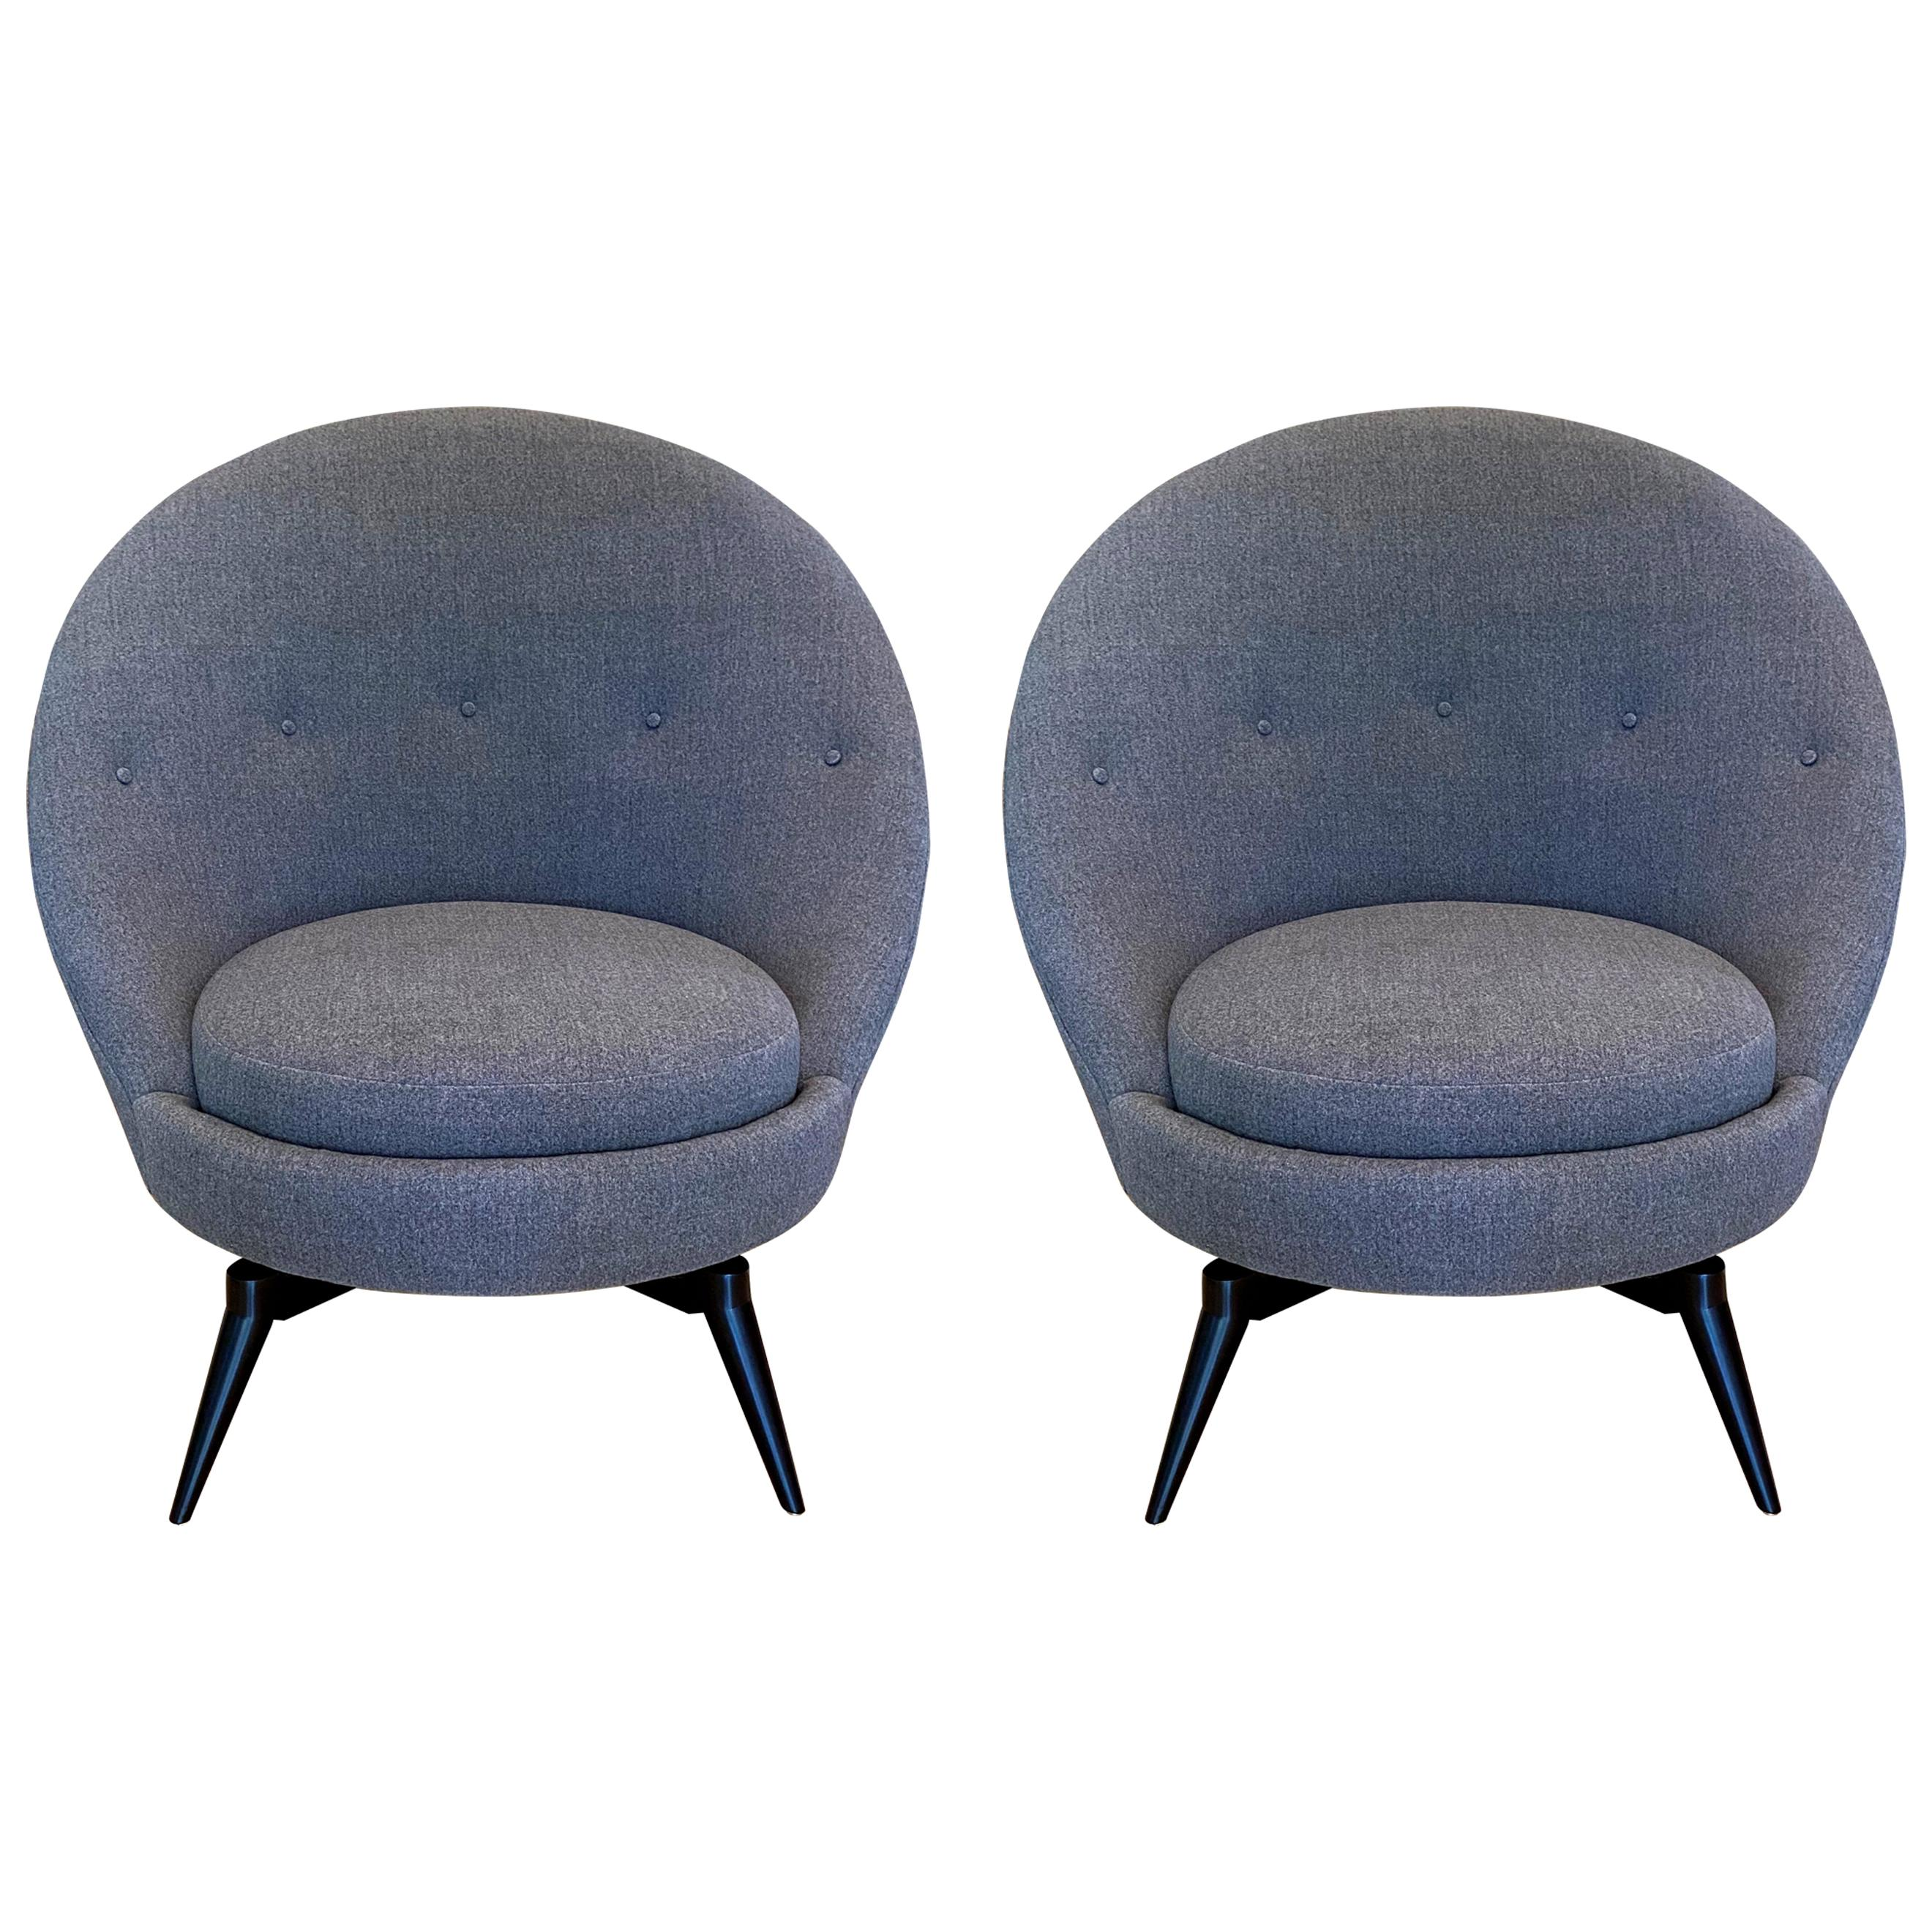 Pair of Charcoal Gray Swivel Chairs